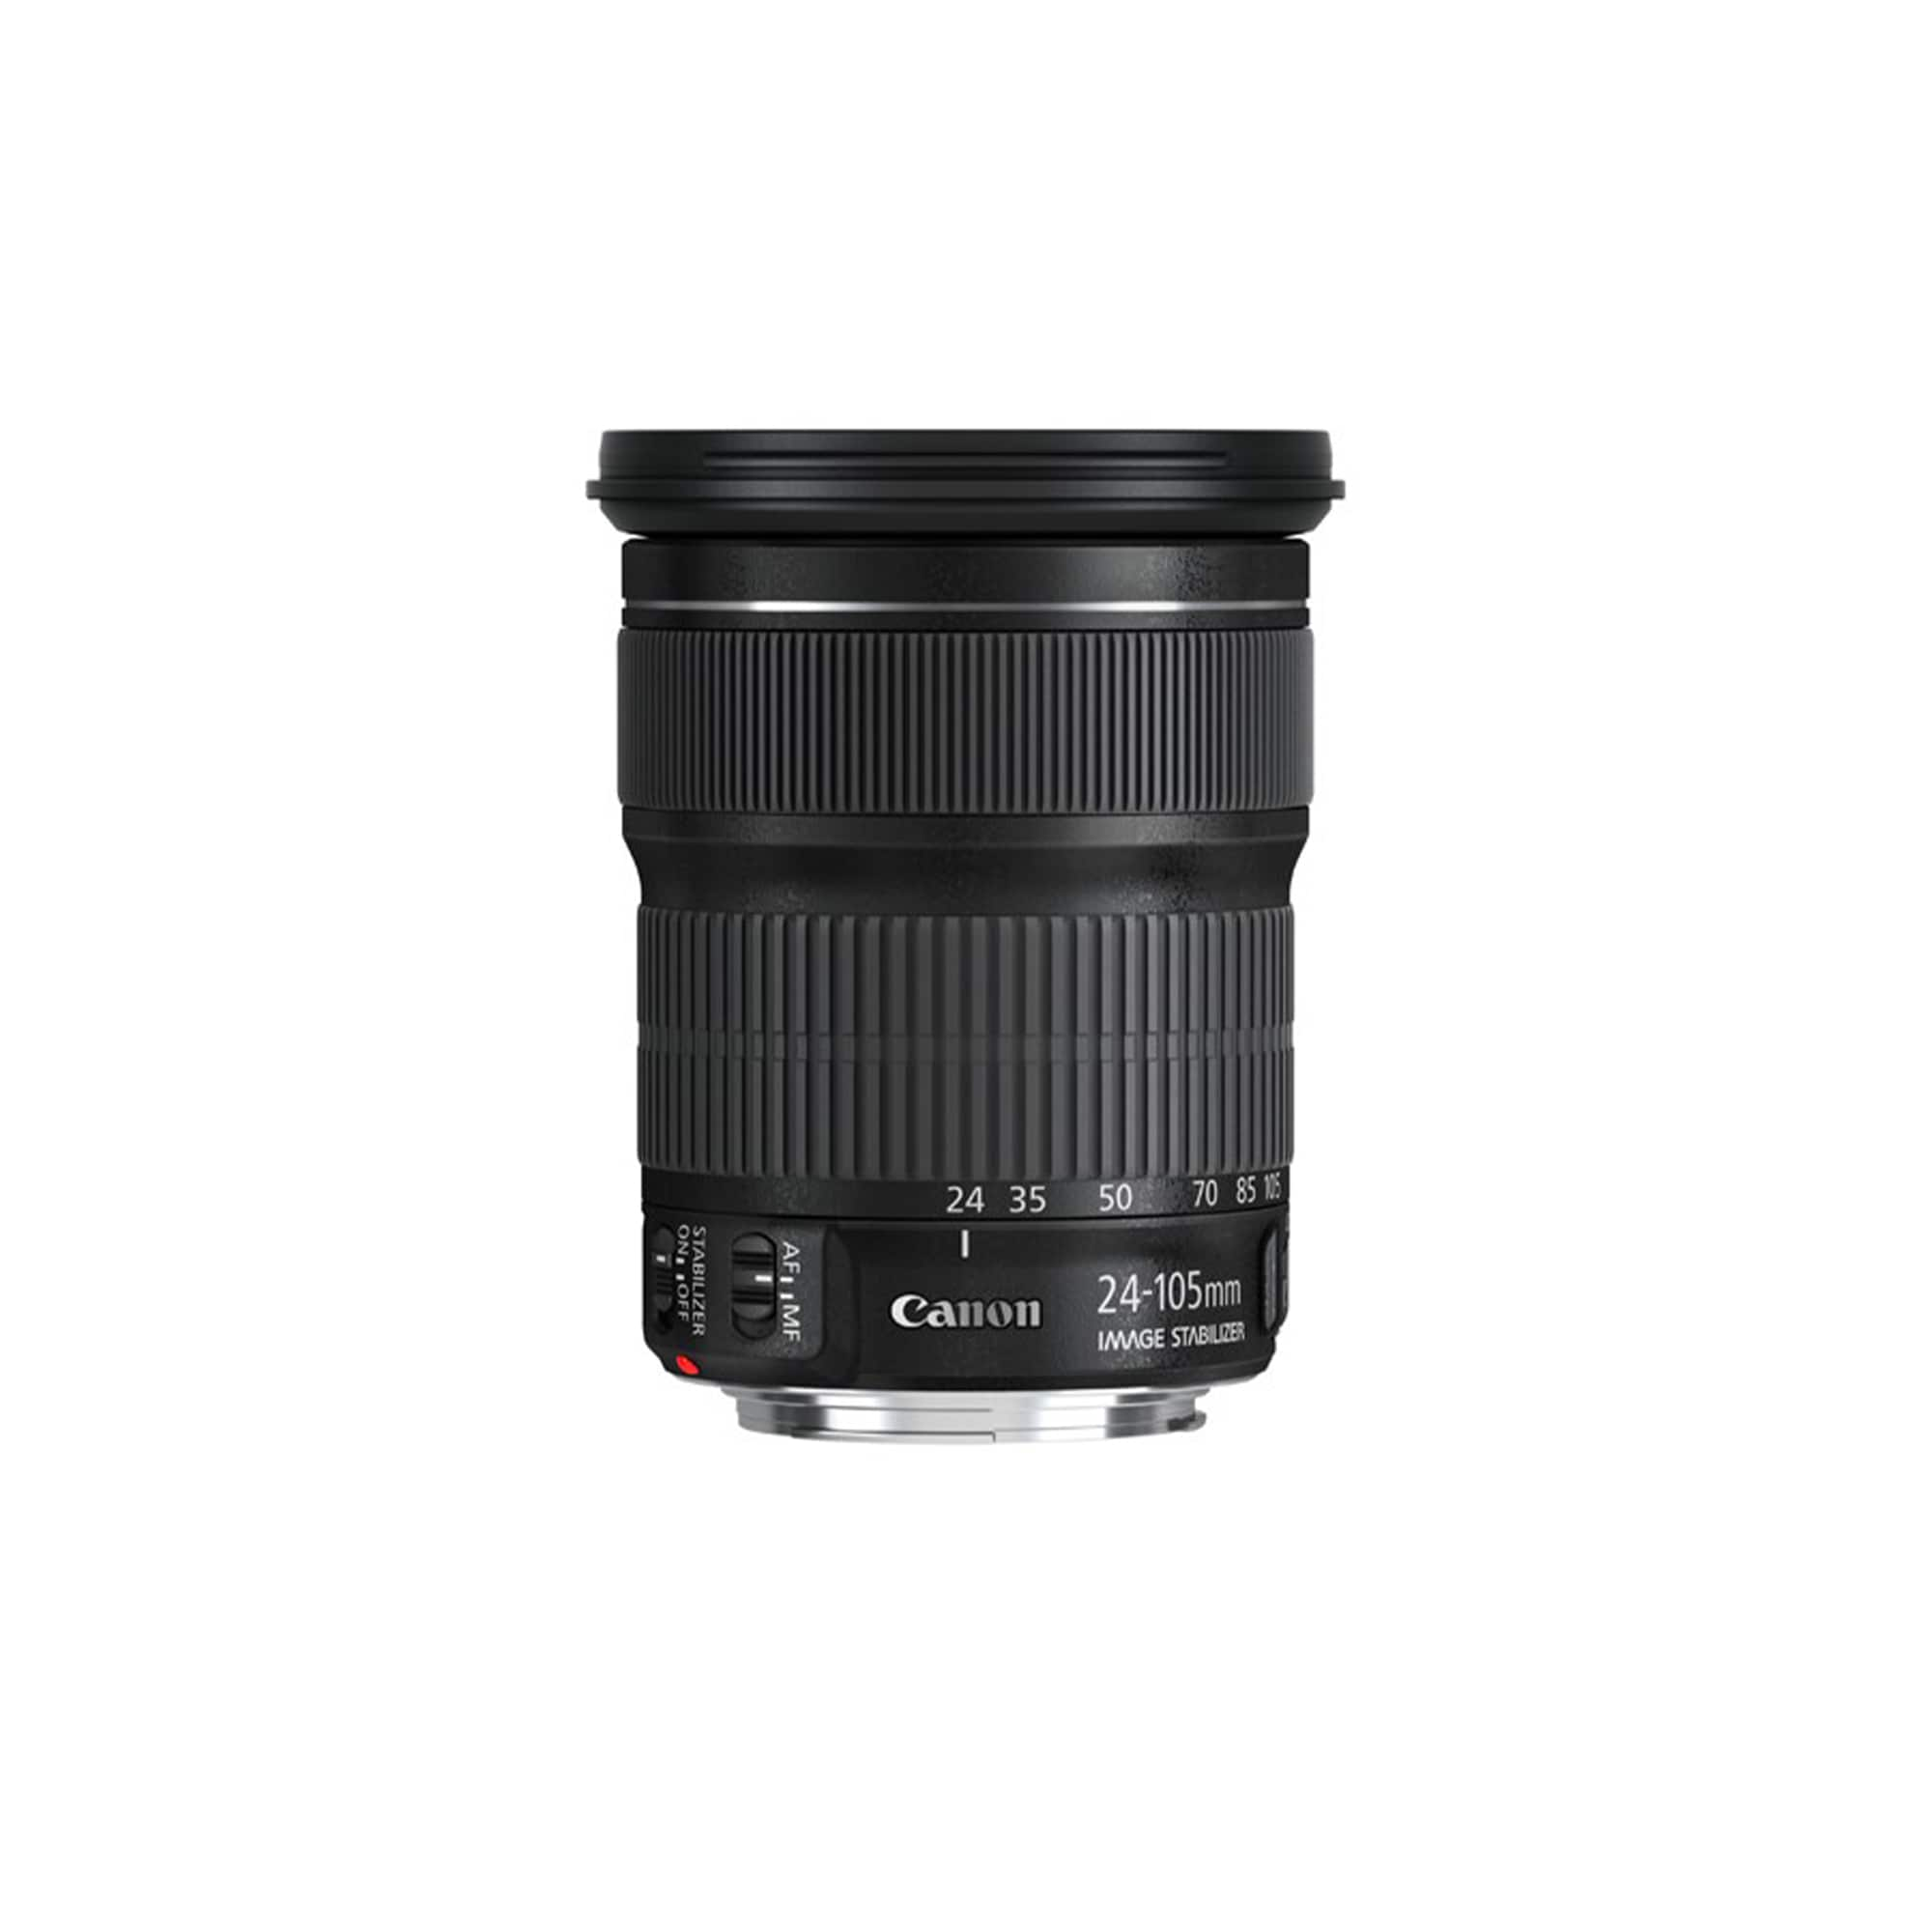 Canon 24-105mm 3,5-5,6 IS STM